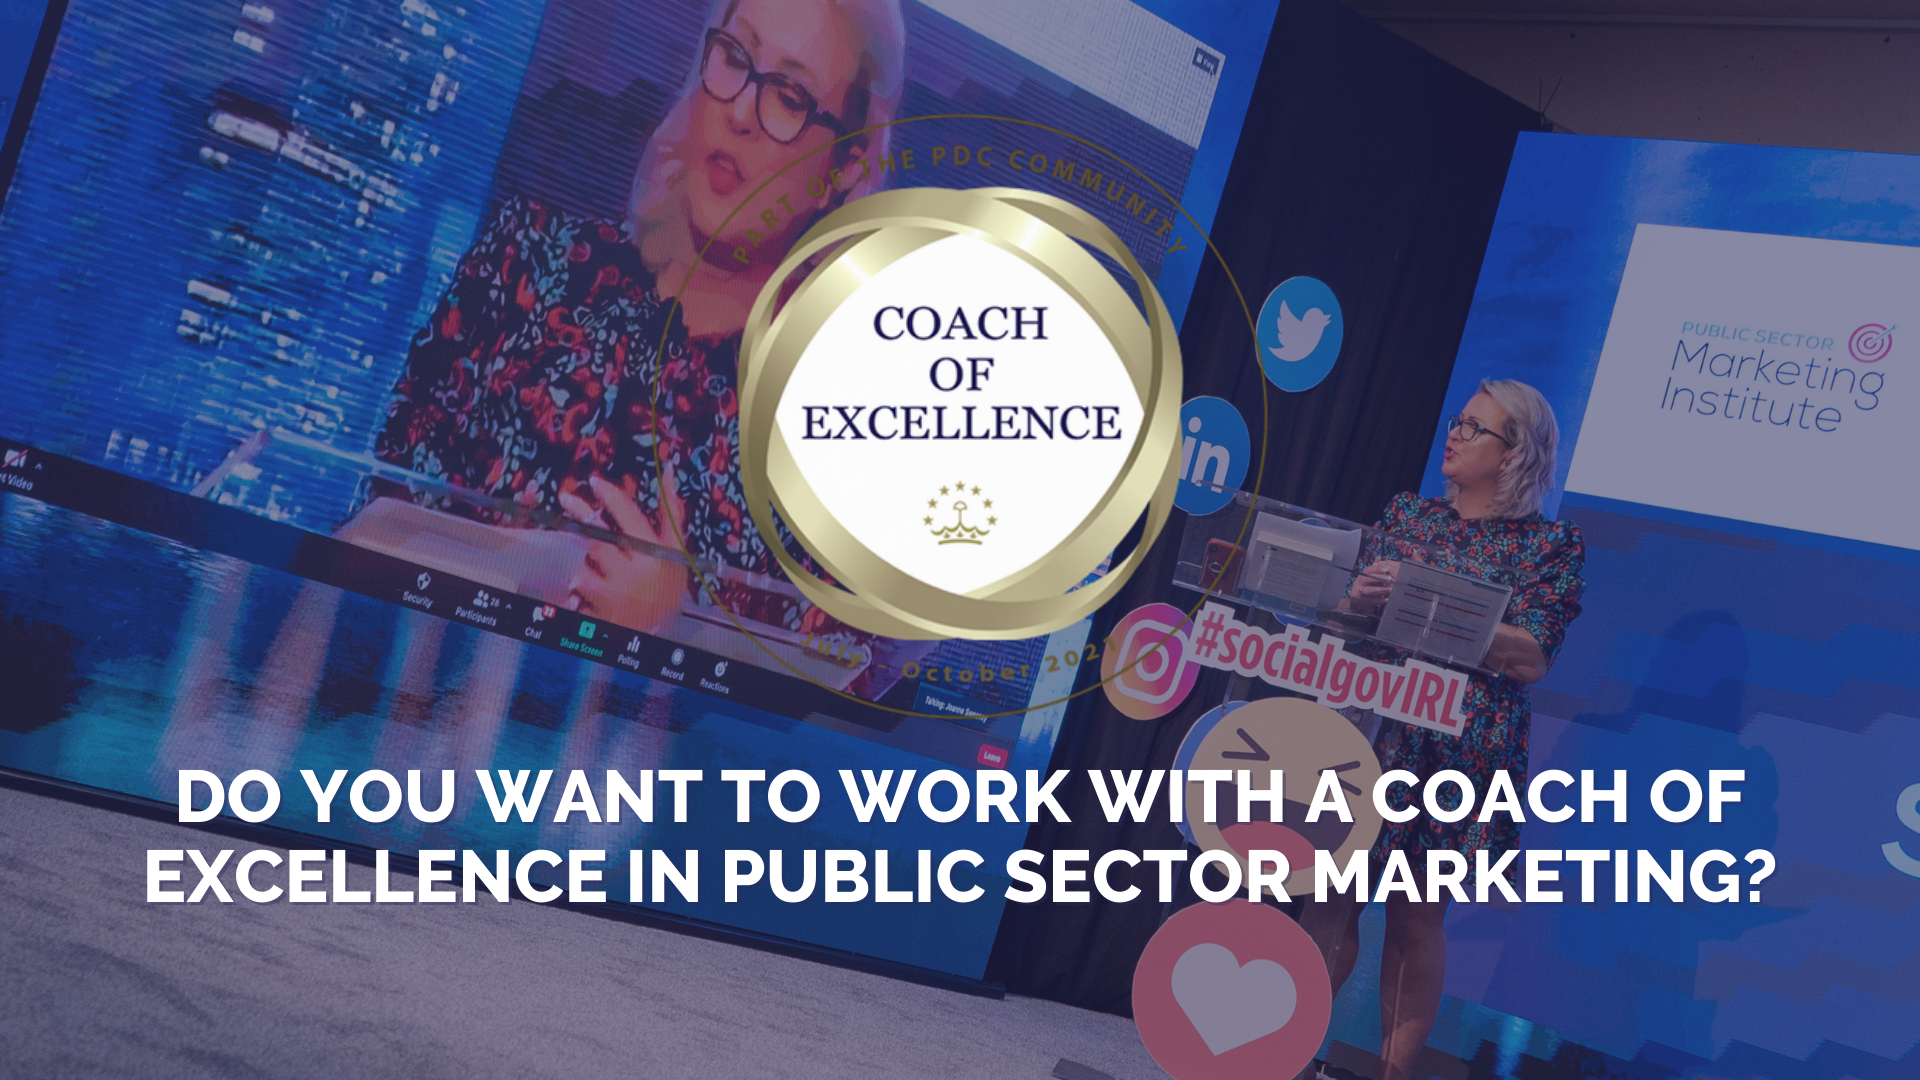 Do You Want To Work With A Coach of Excellence in Public Sector Marketing?